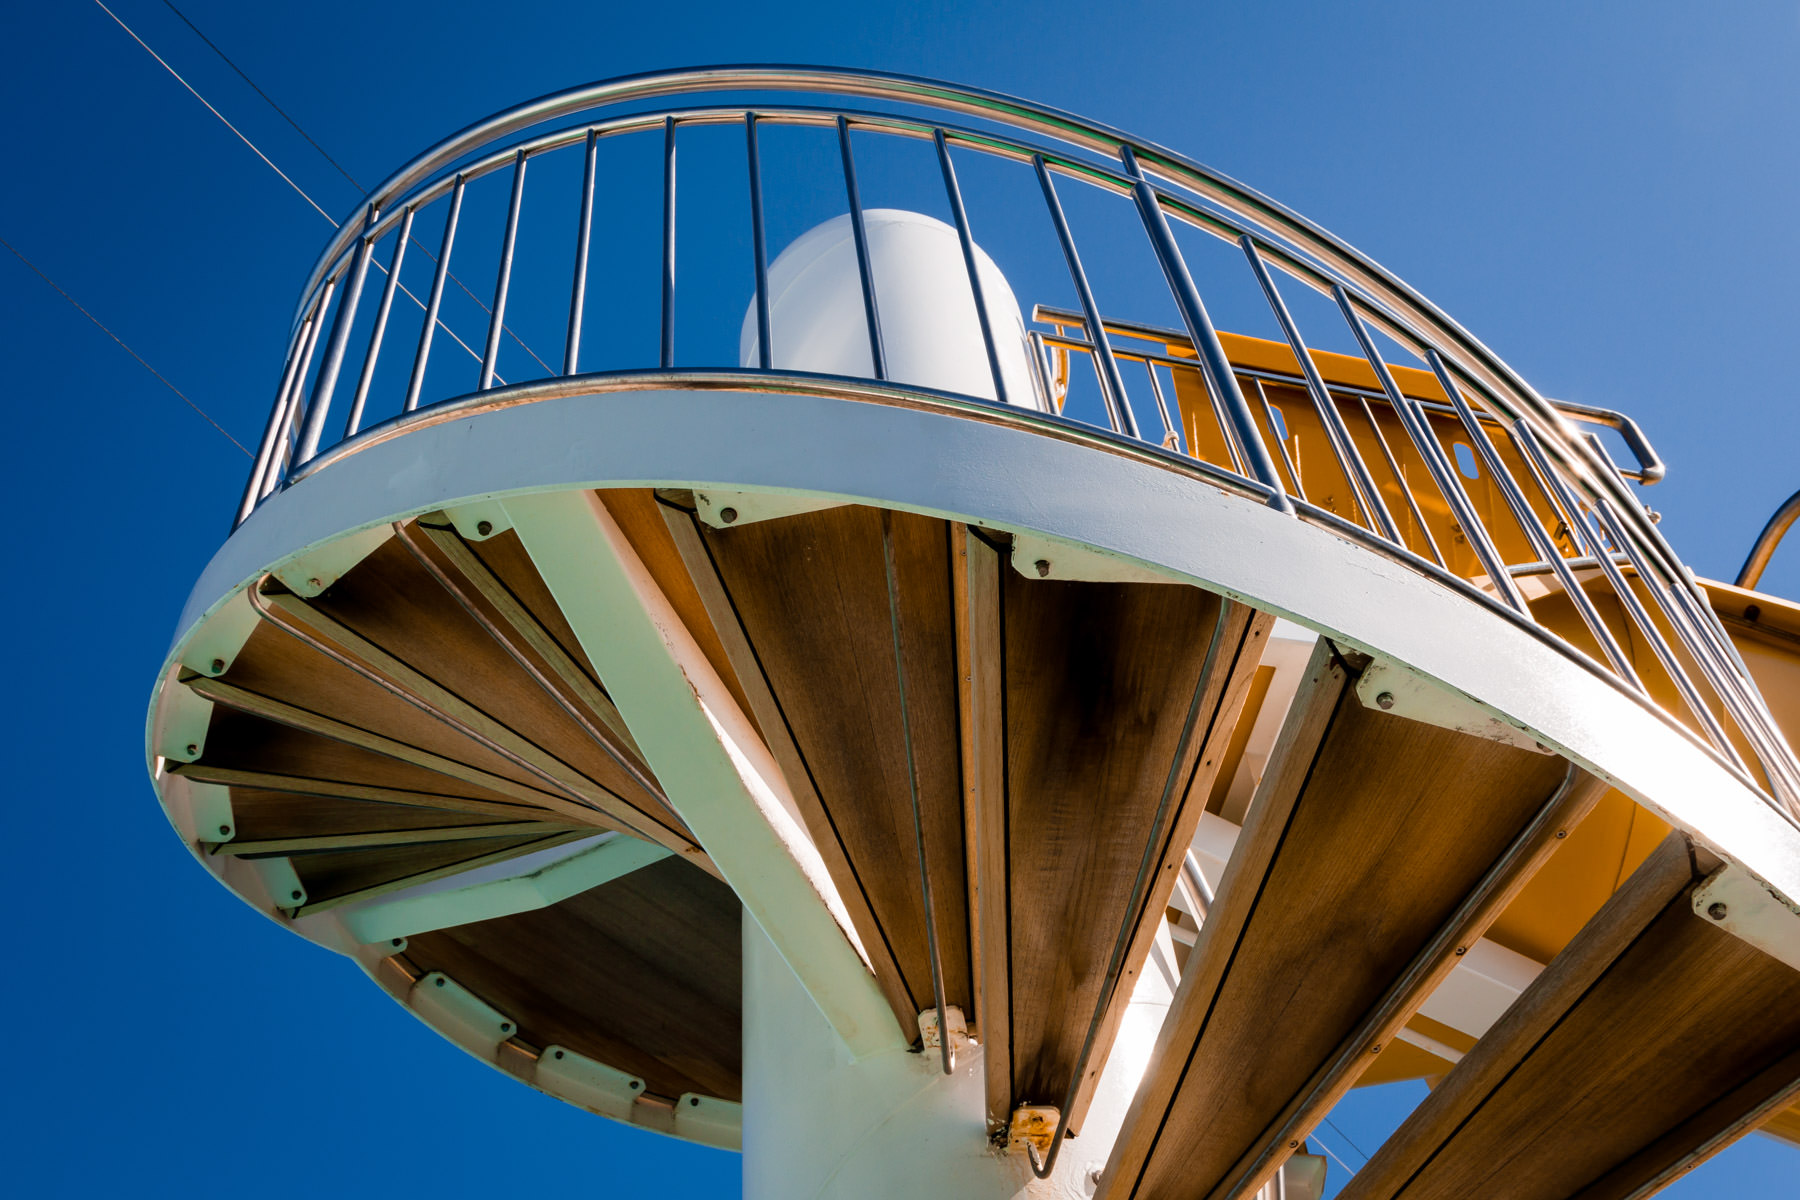 A spiral staircase leading to the top of a water slide aboard the cruise shipNorwegian Pearl.